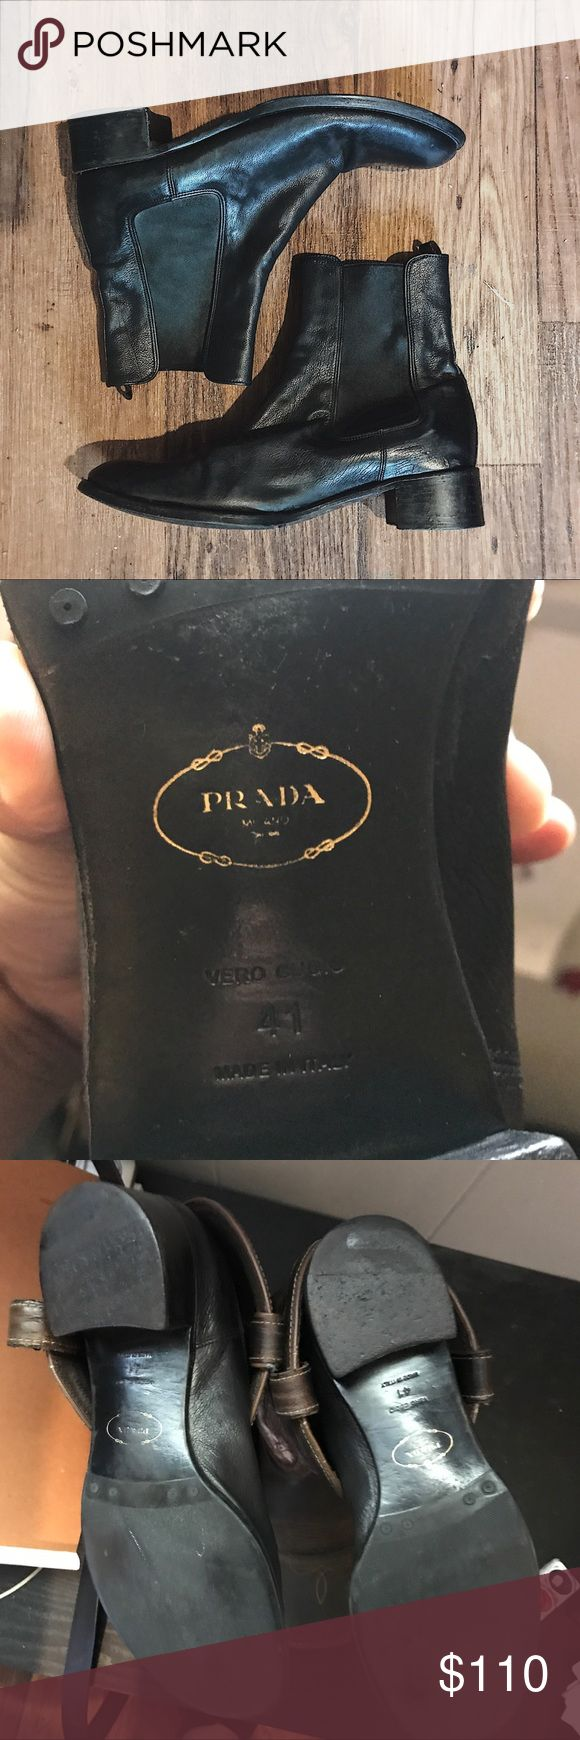 Prada Black Leather Chelsea Boots Prada Black Leather Chelsea Boots. Size 41. The only defect besides slight wear, is a small spot on the inside. It isn't really visible, but is pictured. Prada Shoes Ankle Boots & Booties